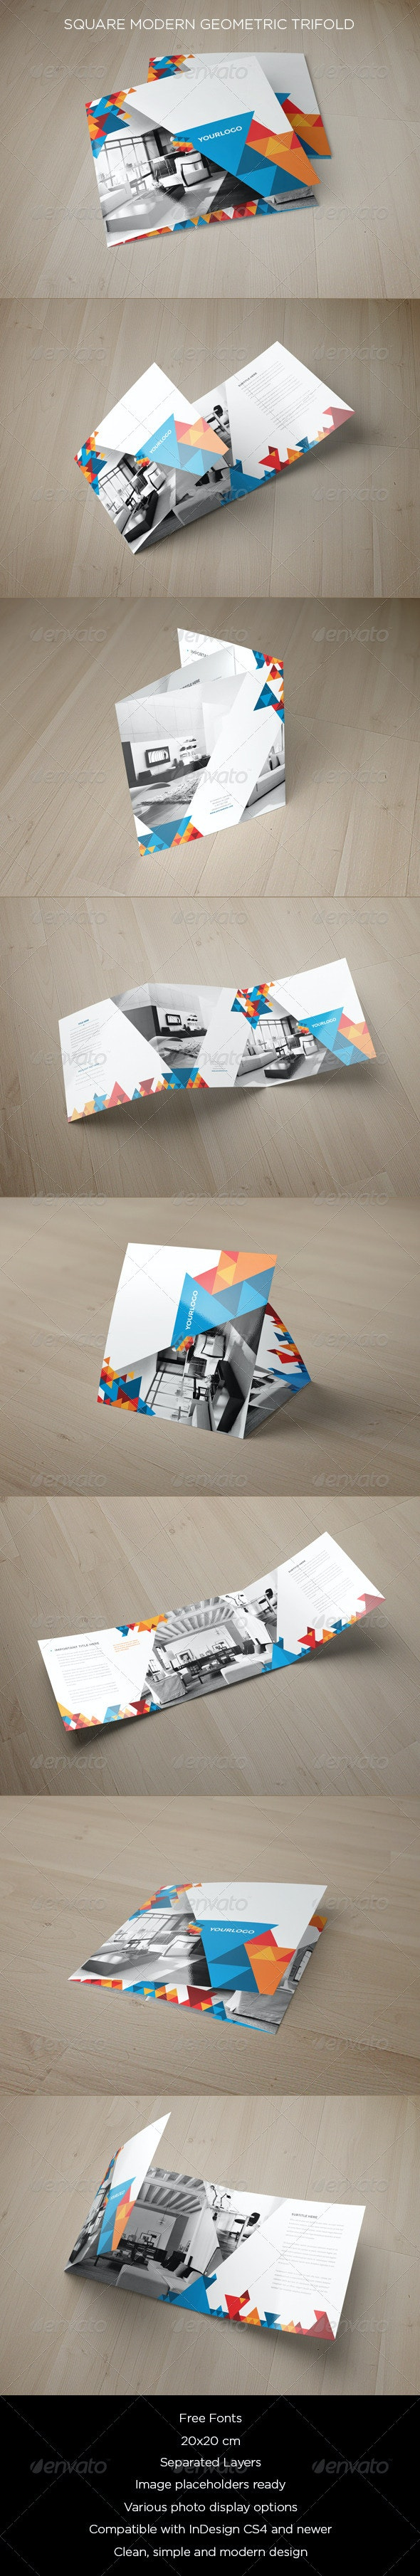 Square Modern Geometric Trifold - Brochures Print Templates